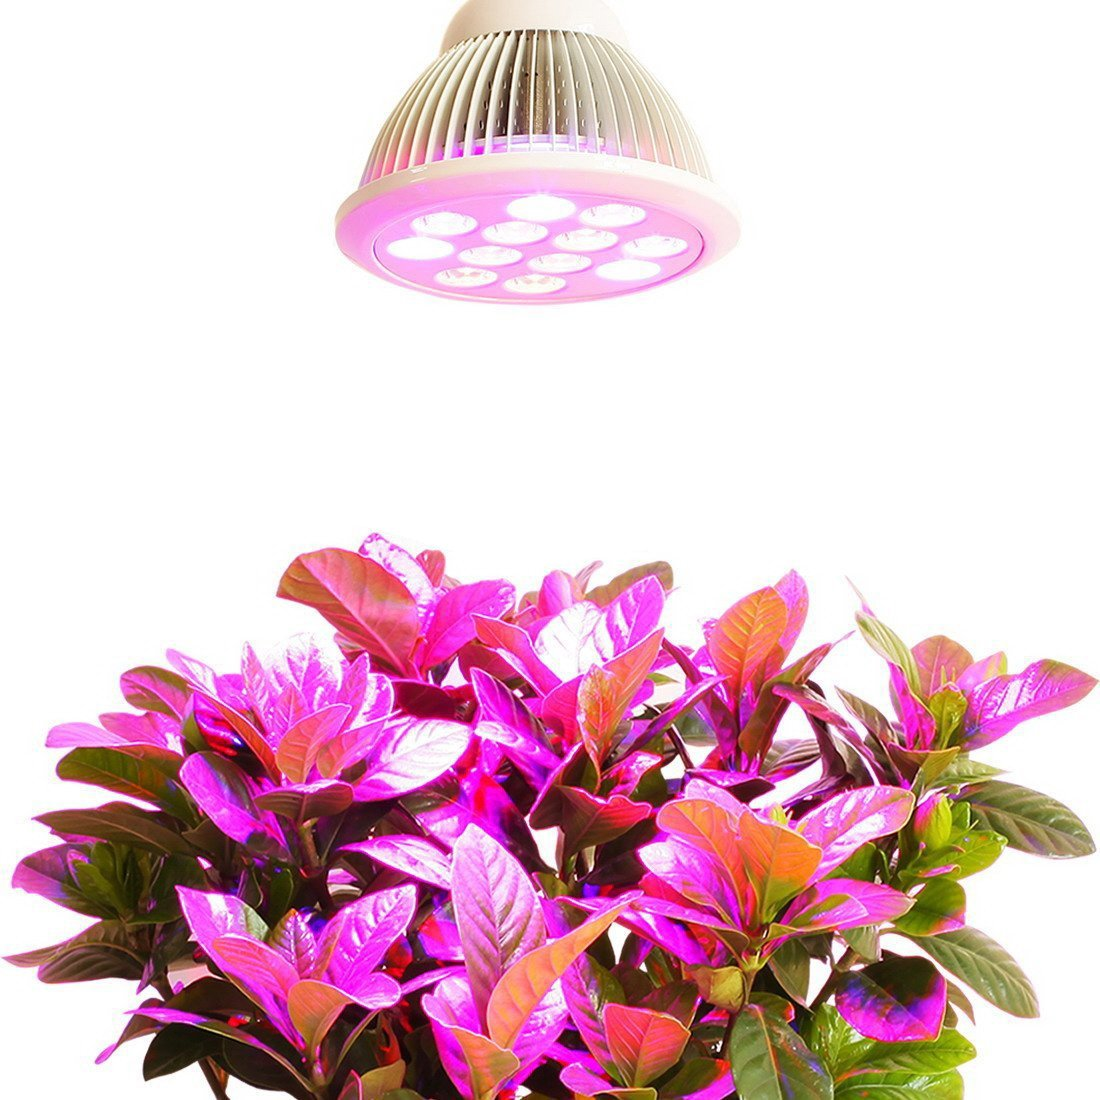 Plant Light, InaRock Newest 12W Plant LED Grow Light E27 Growing Bulbs for Garden Greenhouse and Hydroponic Aquatic Plants Light Full Spectrum Growing Lamps in 3 Bands